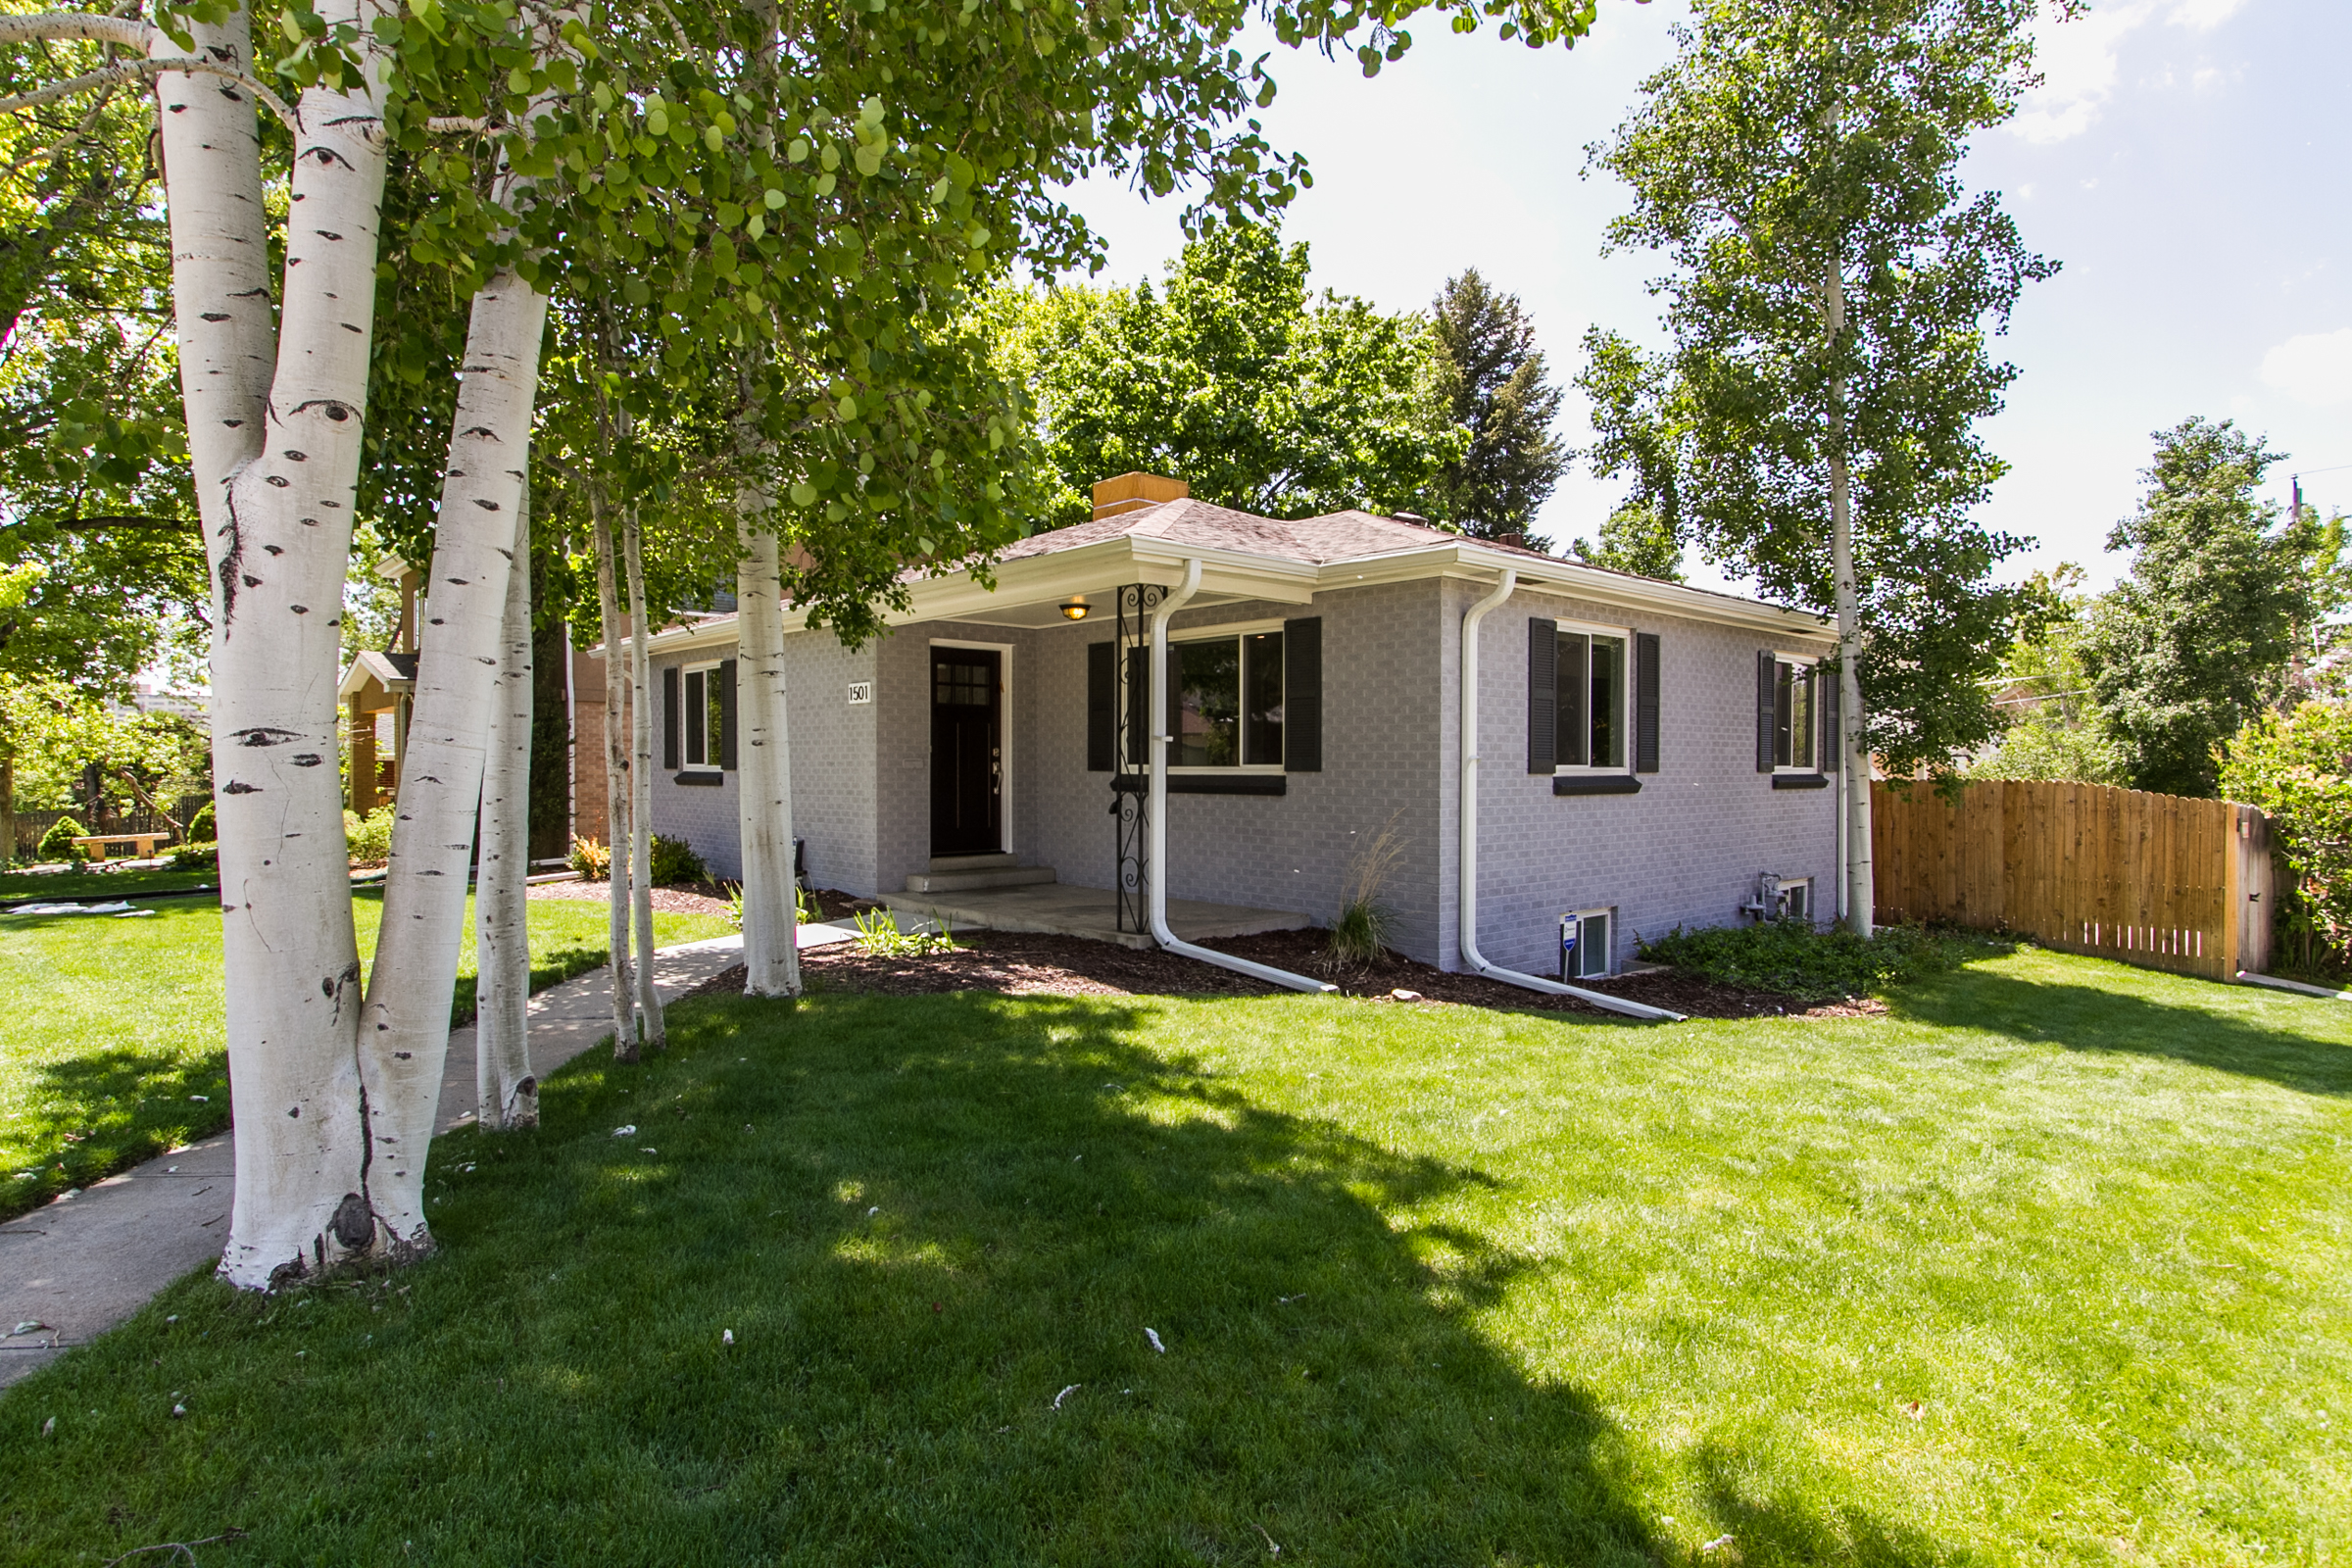 Single Family Home for Sale at Light and Bright, Beautifully updated Bungalow on a Large Corner Lot 1501 S. York Street Washington Park, Denver, Colorado 80210 United States